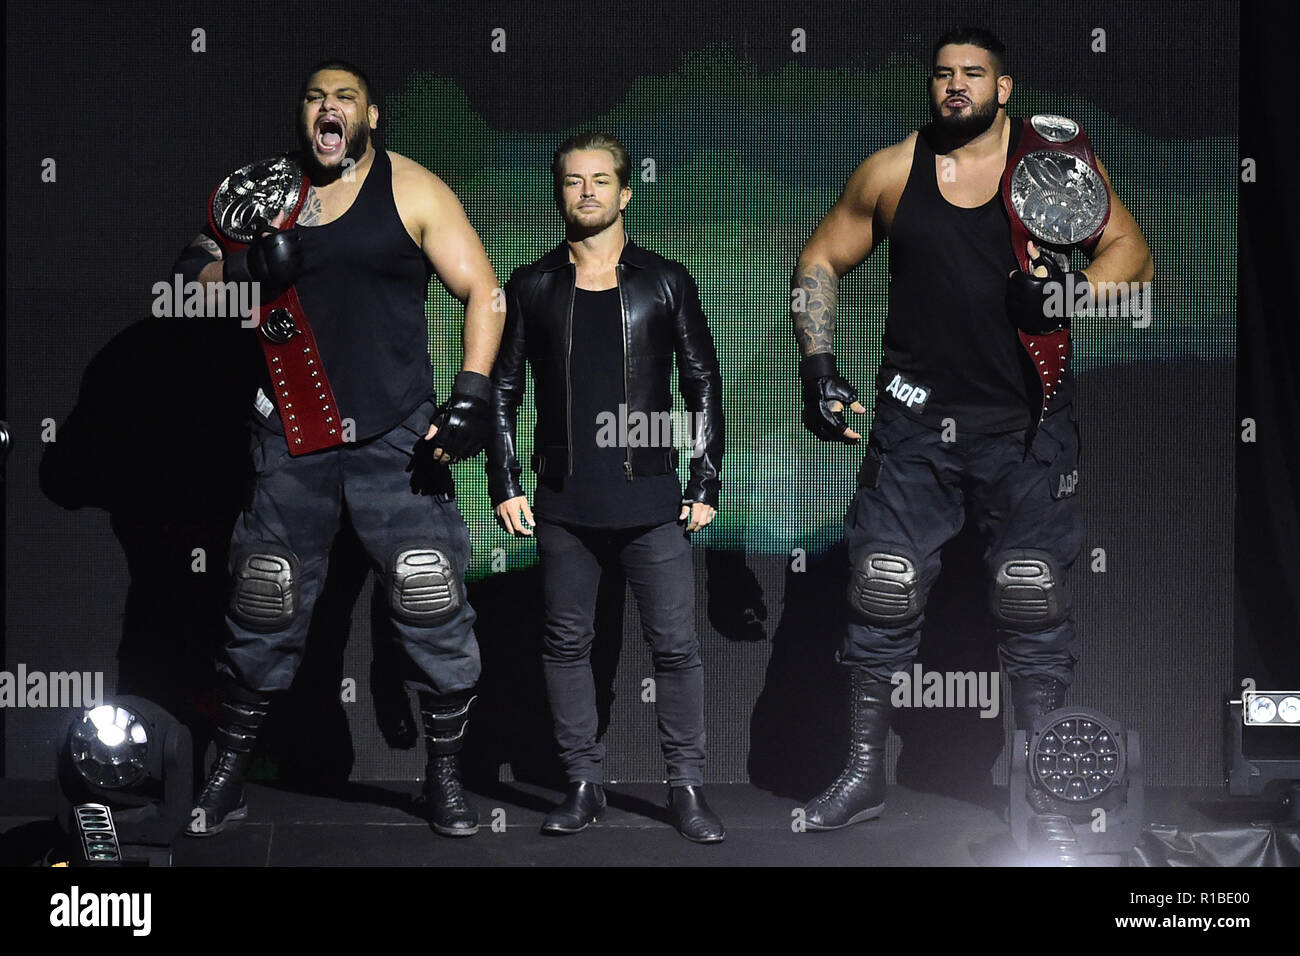 Rome, Italy. 11th Nov, 2018. Show WWE live at the Palalottomatica-Rome 10-11-2018 In the picture The AOP Photo Photographer01 Credit: Independent Photo Agency/Alamy Live News Stock Photo